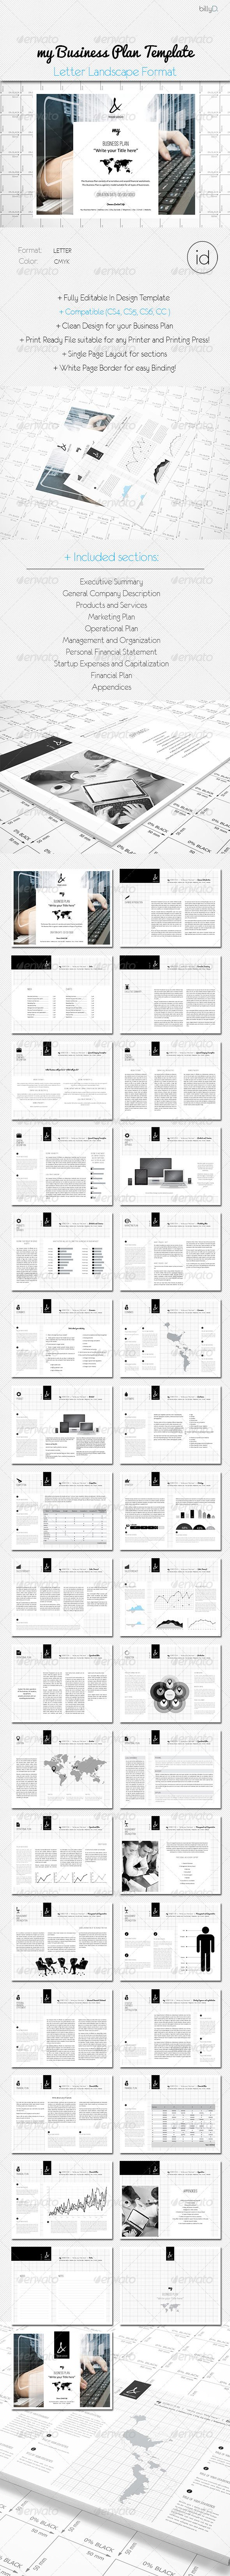 My Business Plan Template - Letter Landscape Forma